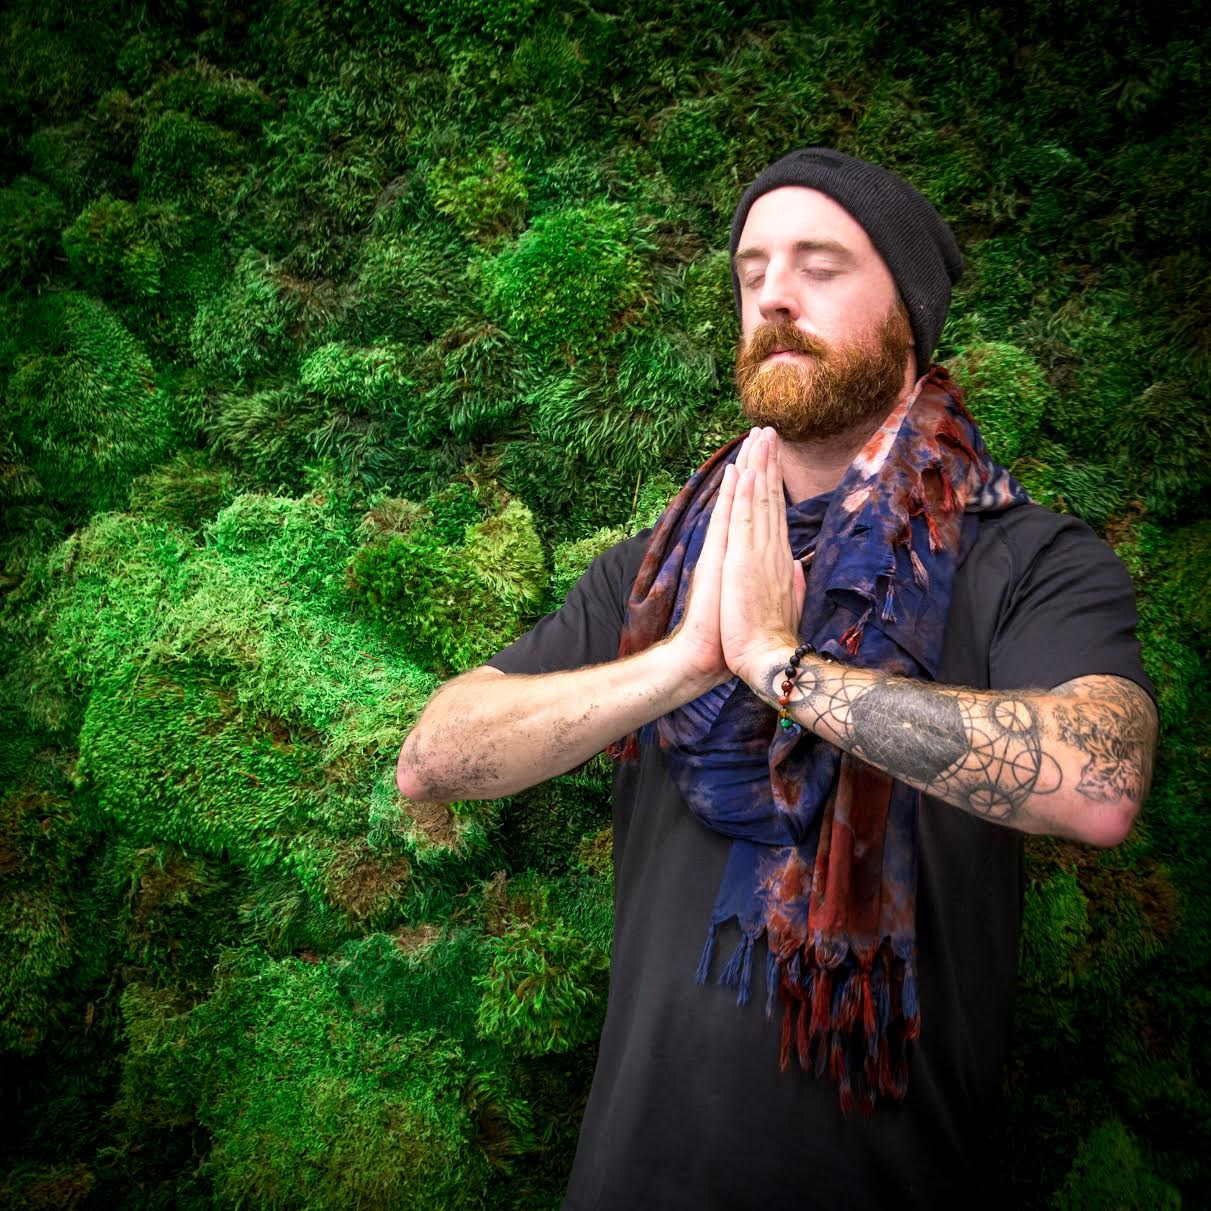 Brian Crawford, International Yoga Photographer/Artist